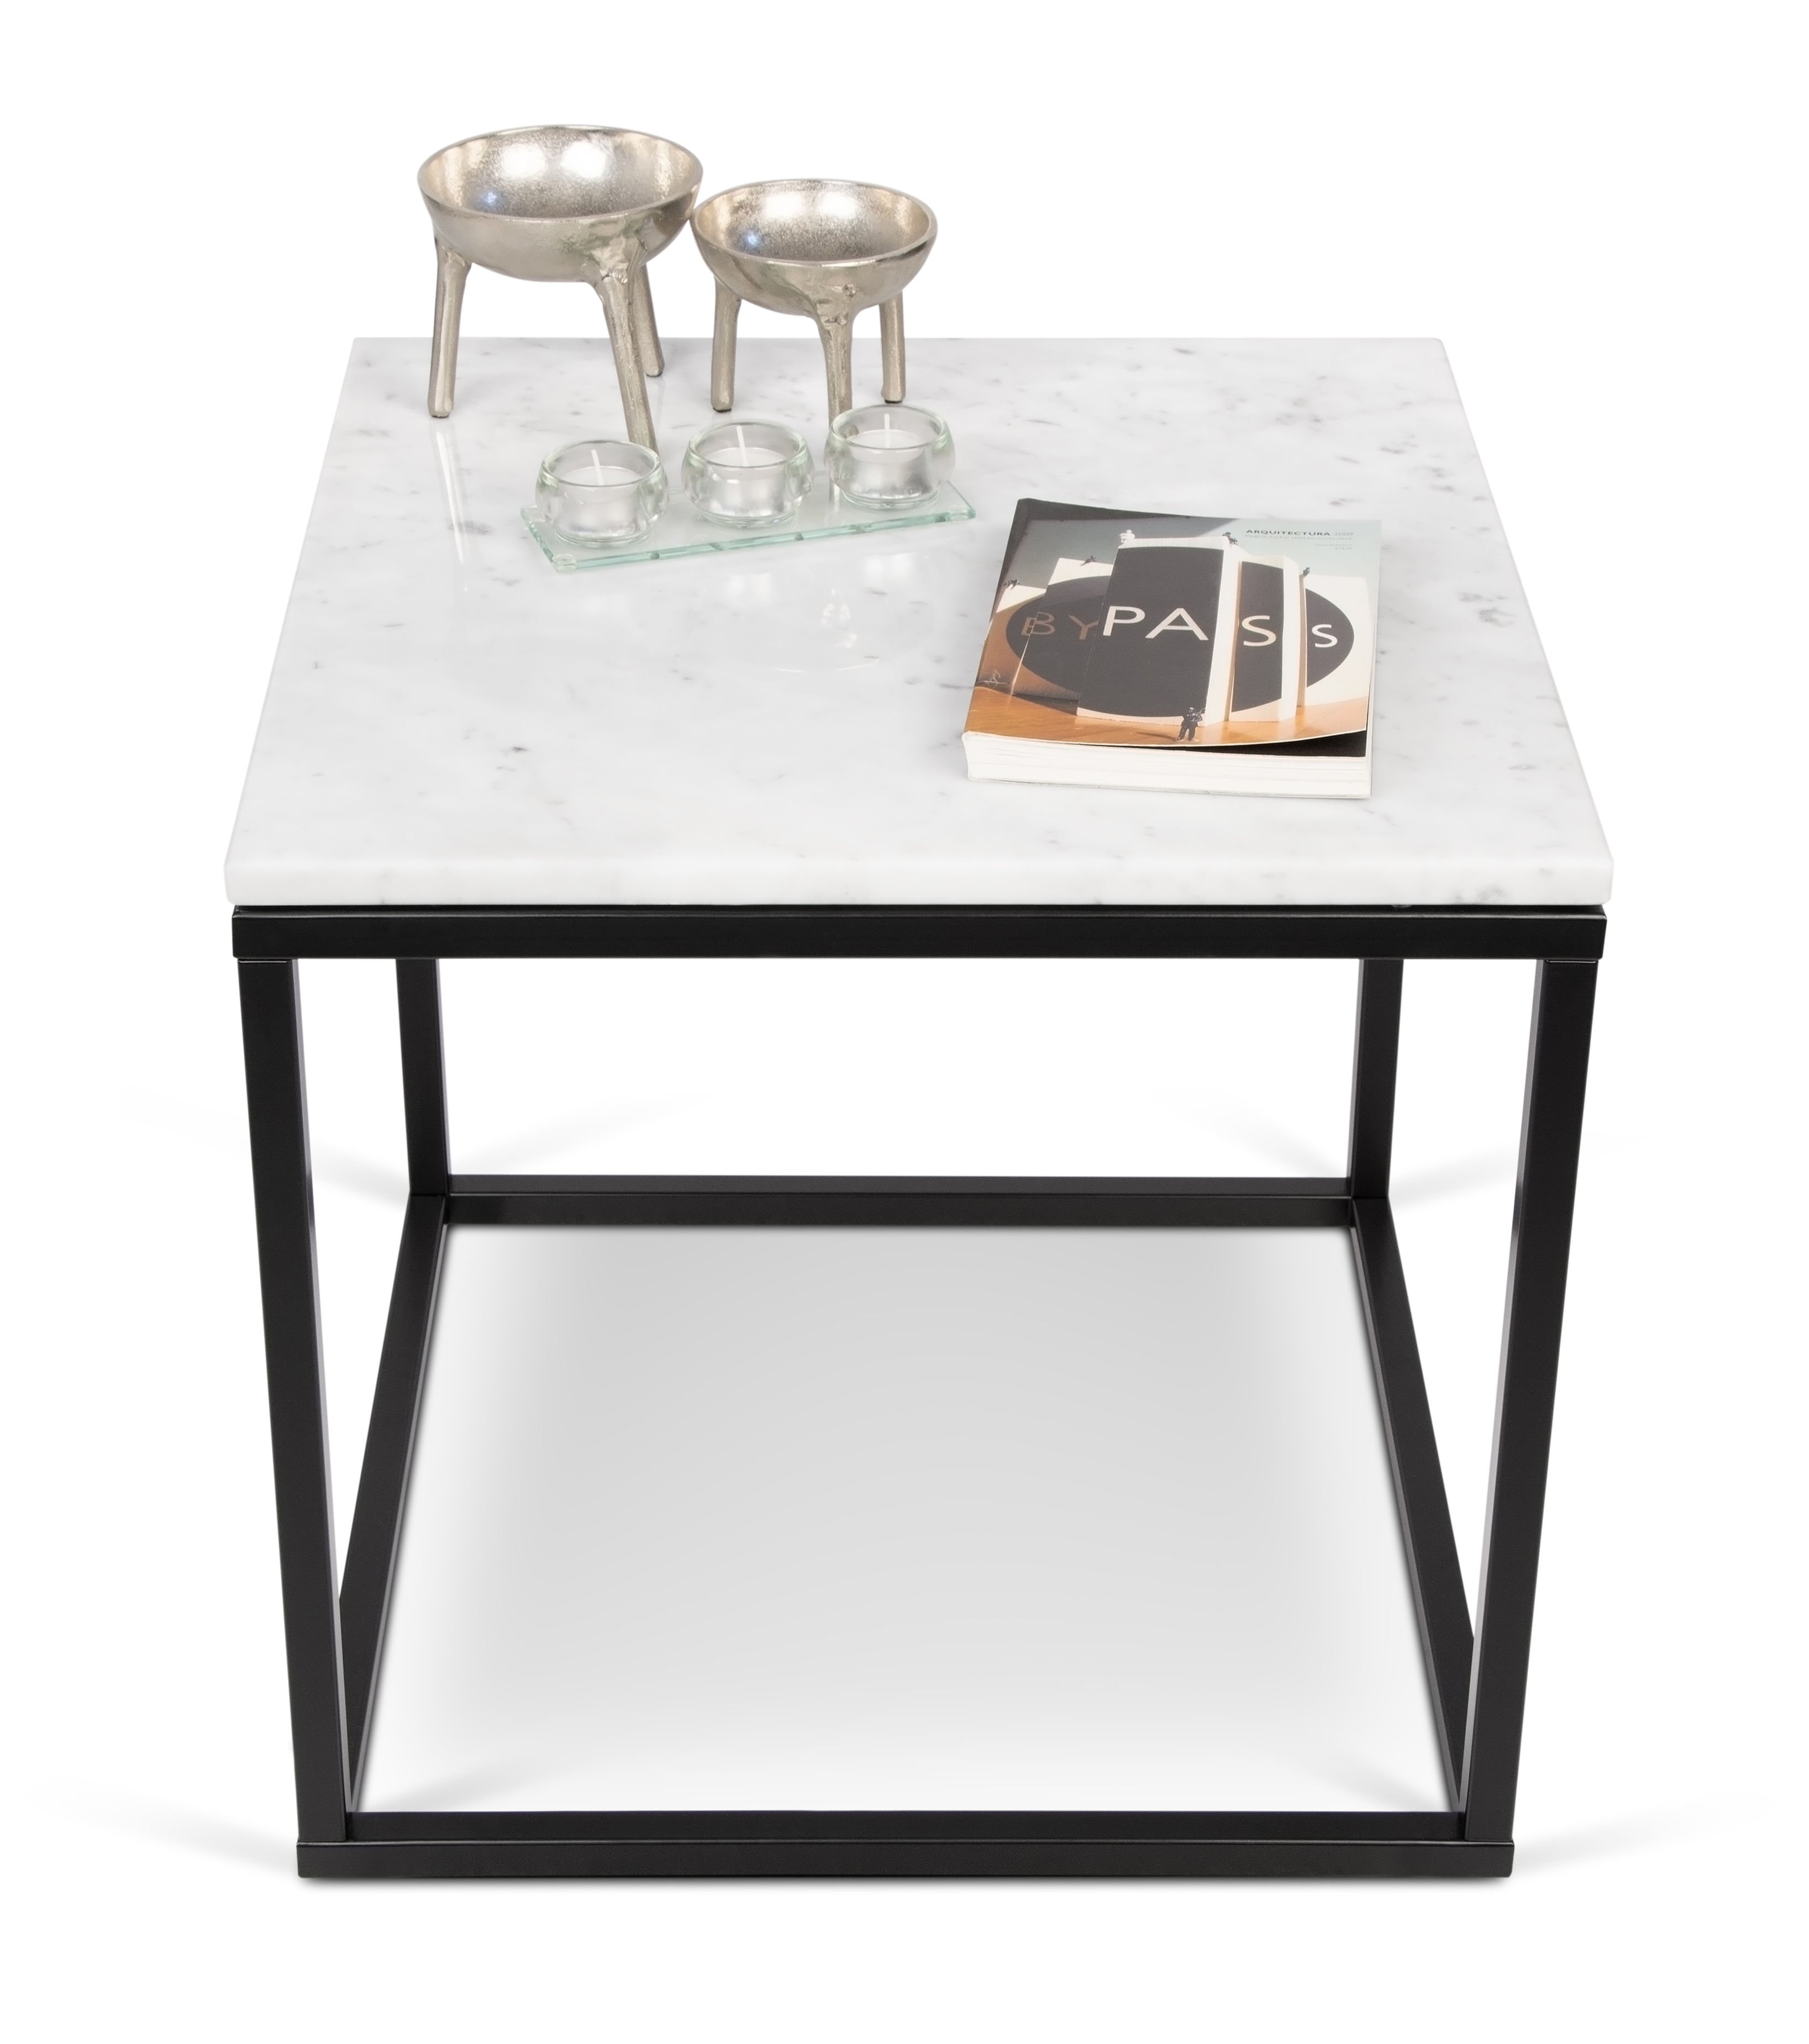 Marble Coffee Table With Metal Legs: 50 X 50cm White Marble